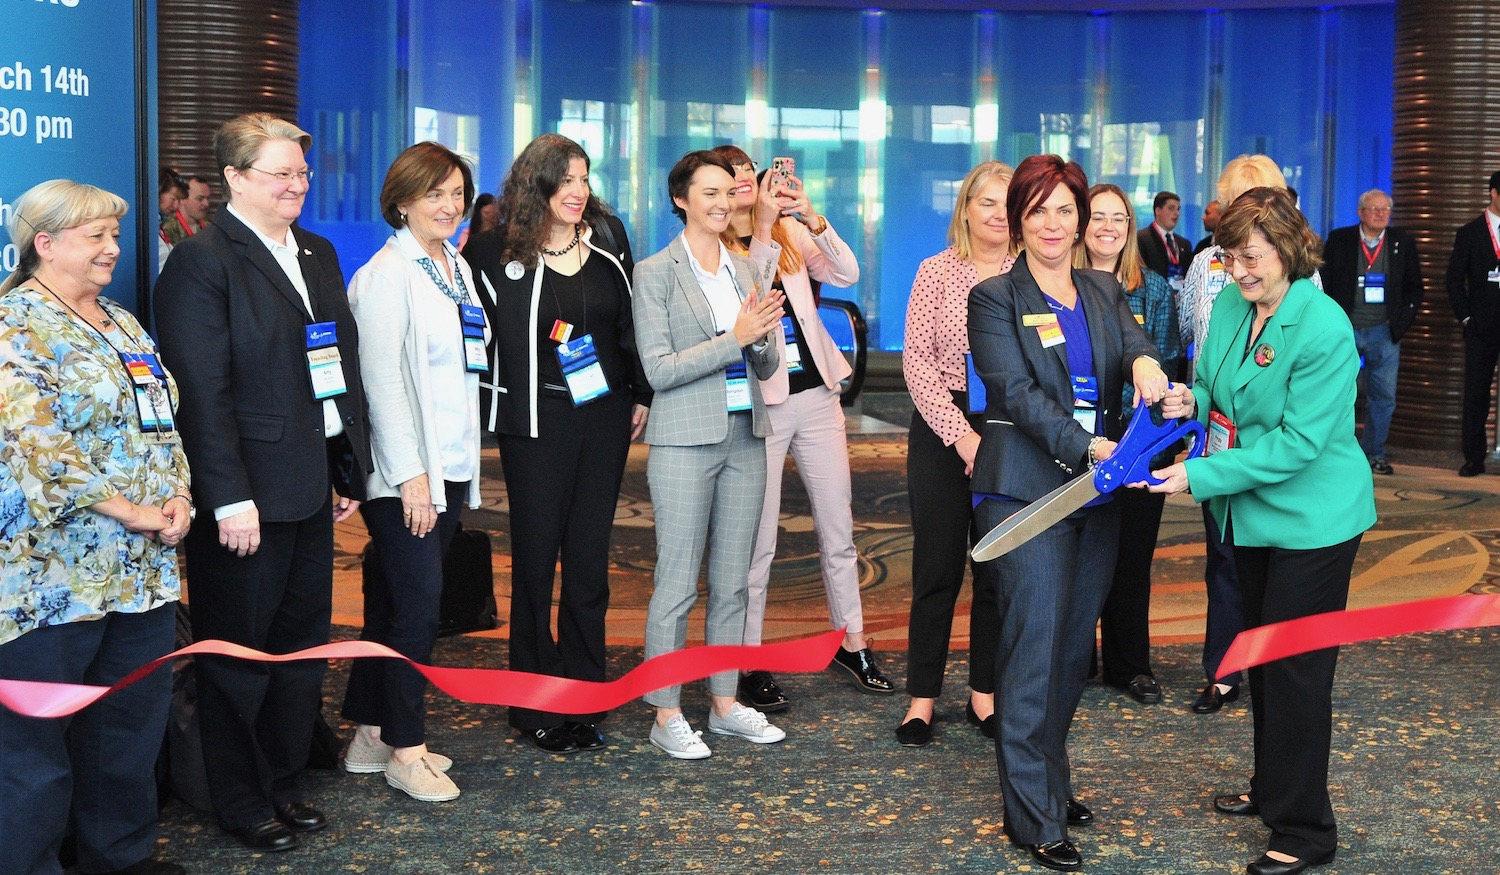 2019 Women in Aviation International Conference: A Lesson About Persistence